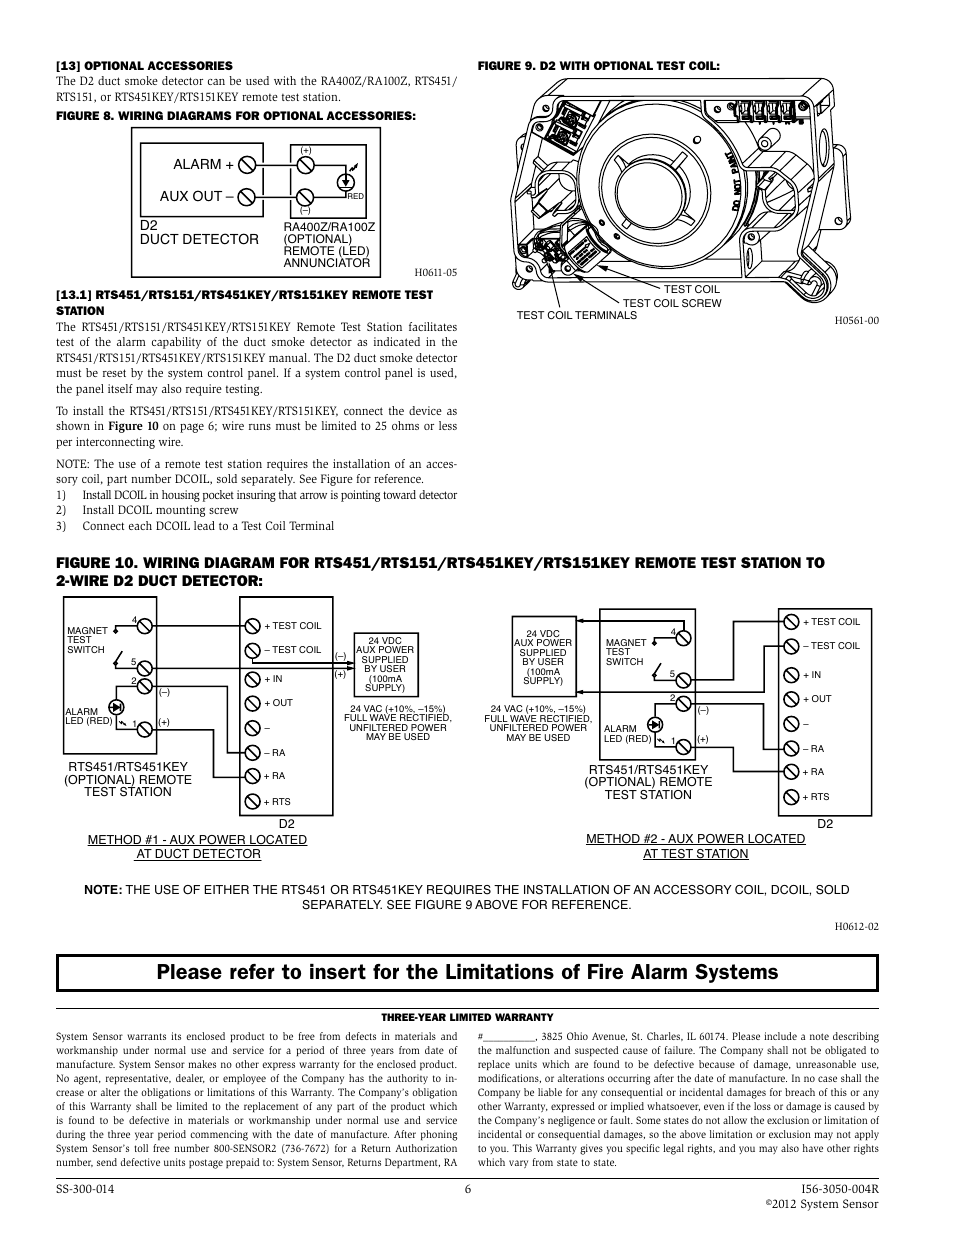 system sensor d2 page6 annunciator wiring diagram friendship bracelet diagrams \u2022 free 5R55E Transmission Wiring Diagram at bakdesigns.co